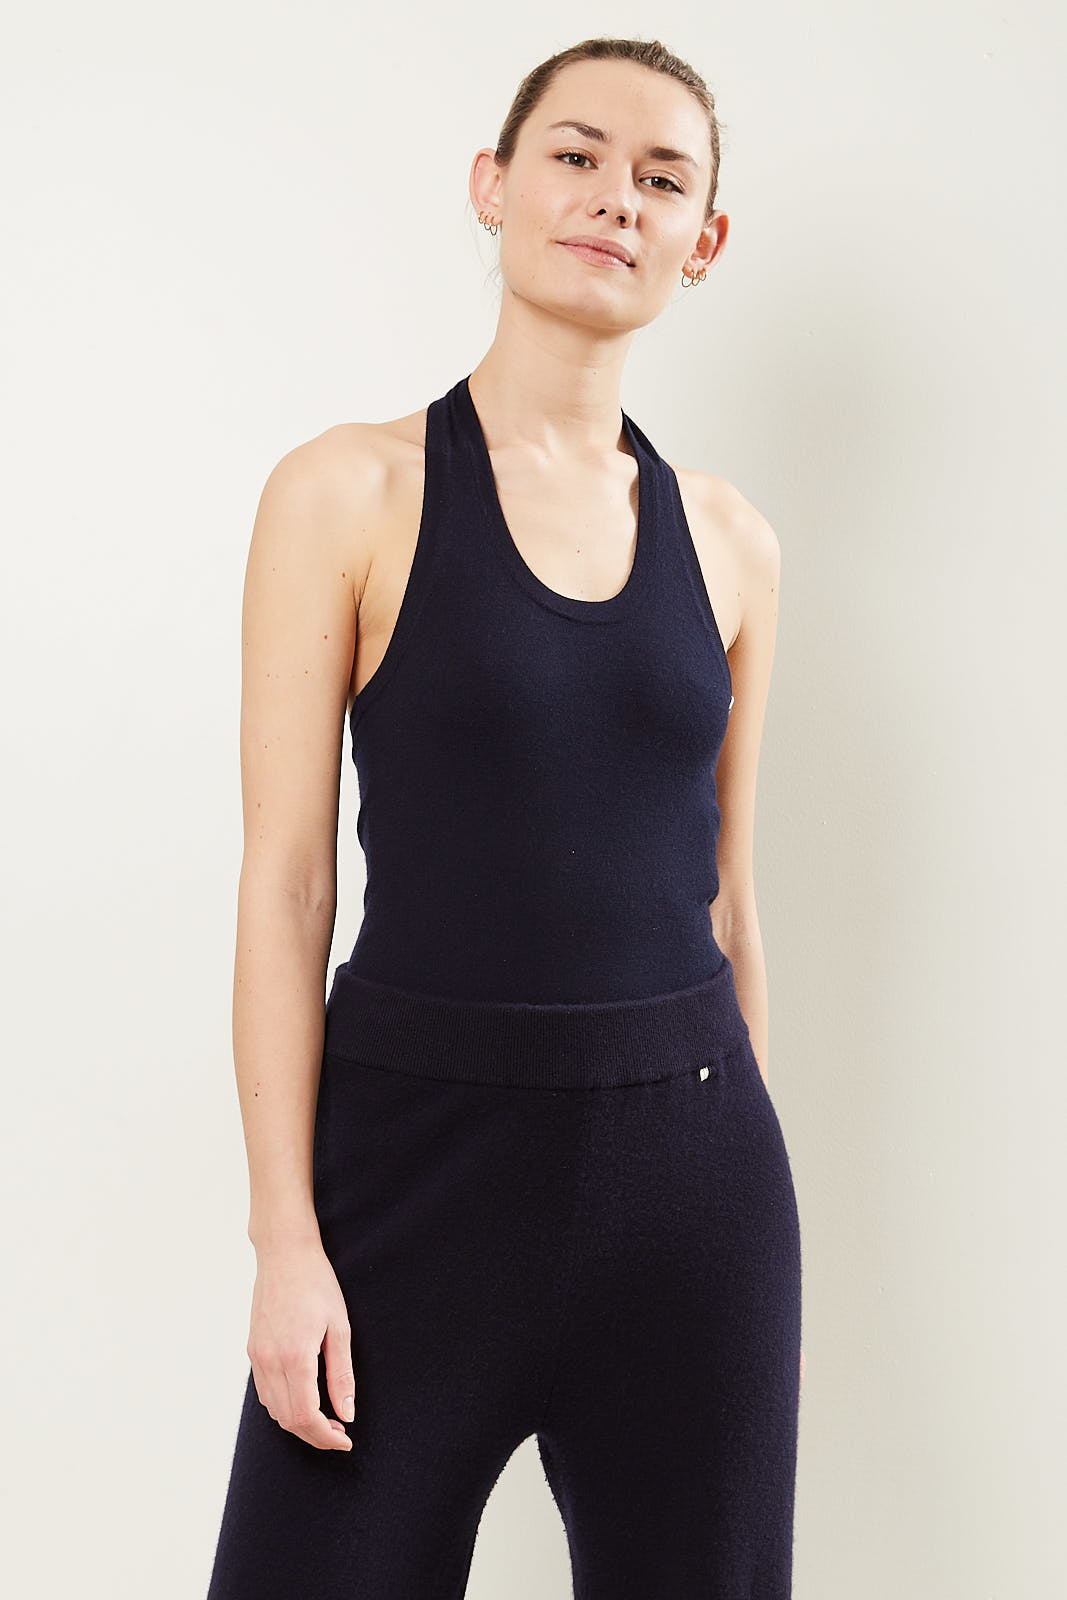 extreme cashmere - swim cashmere all in one navy one size